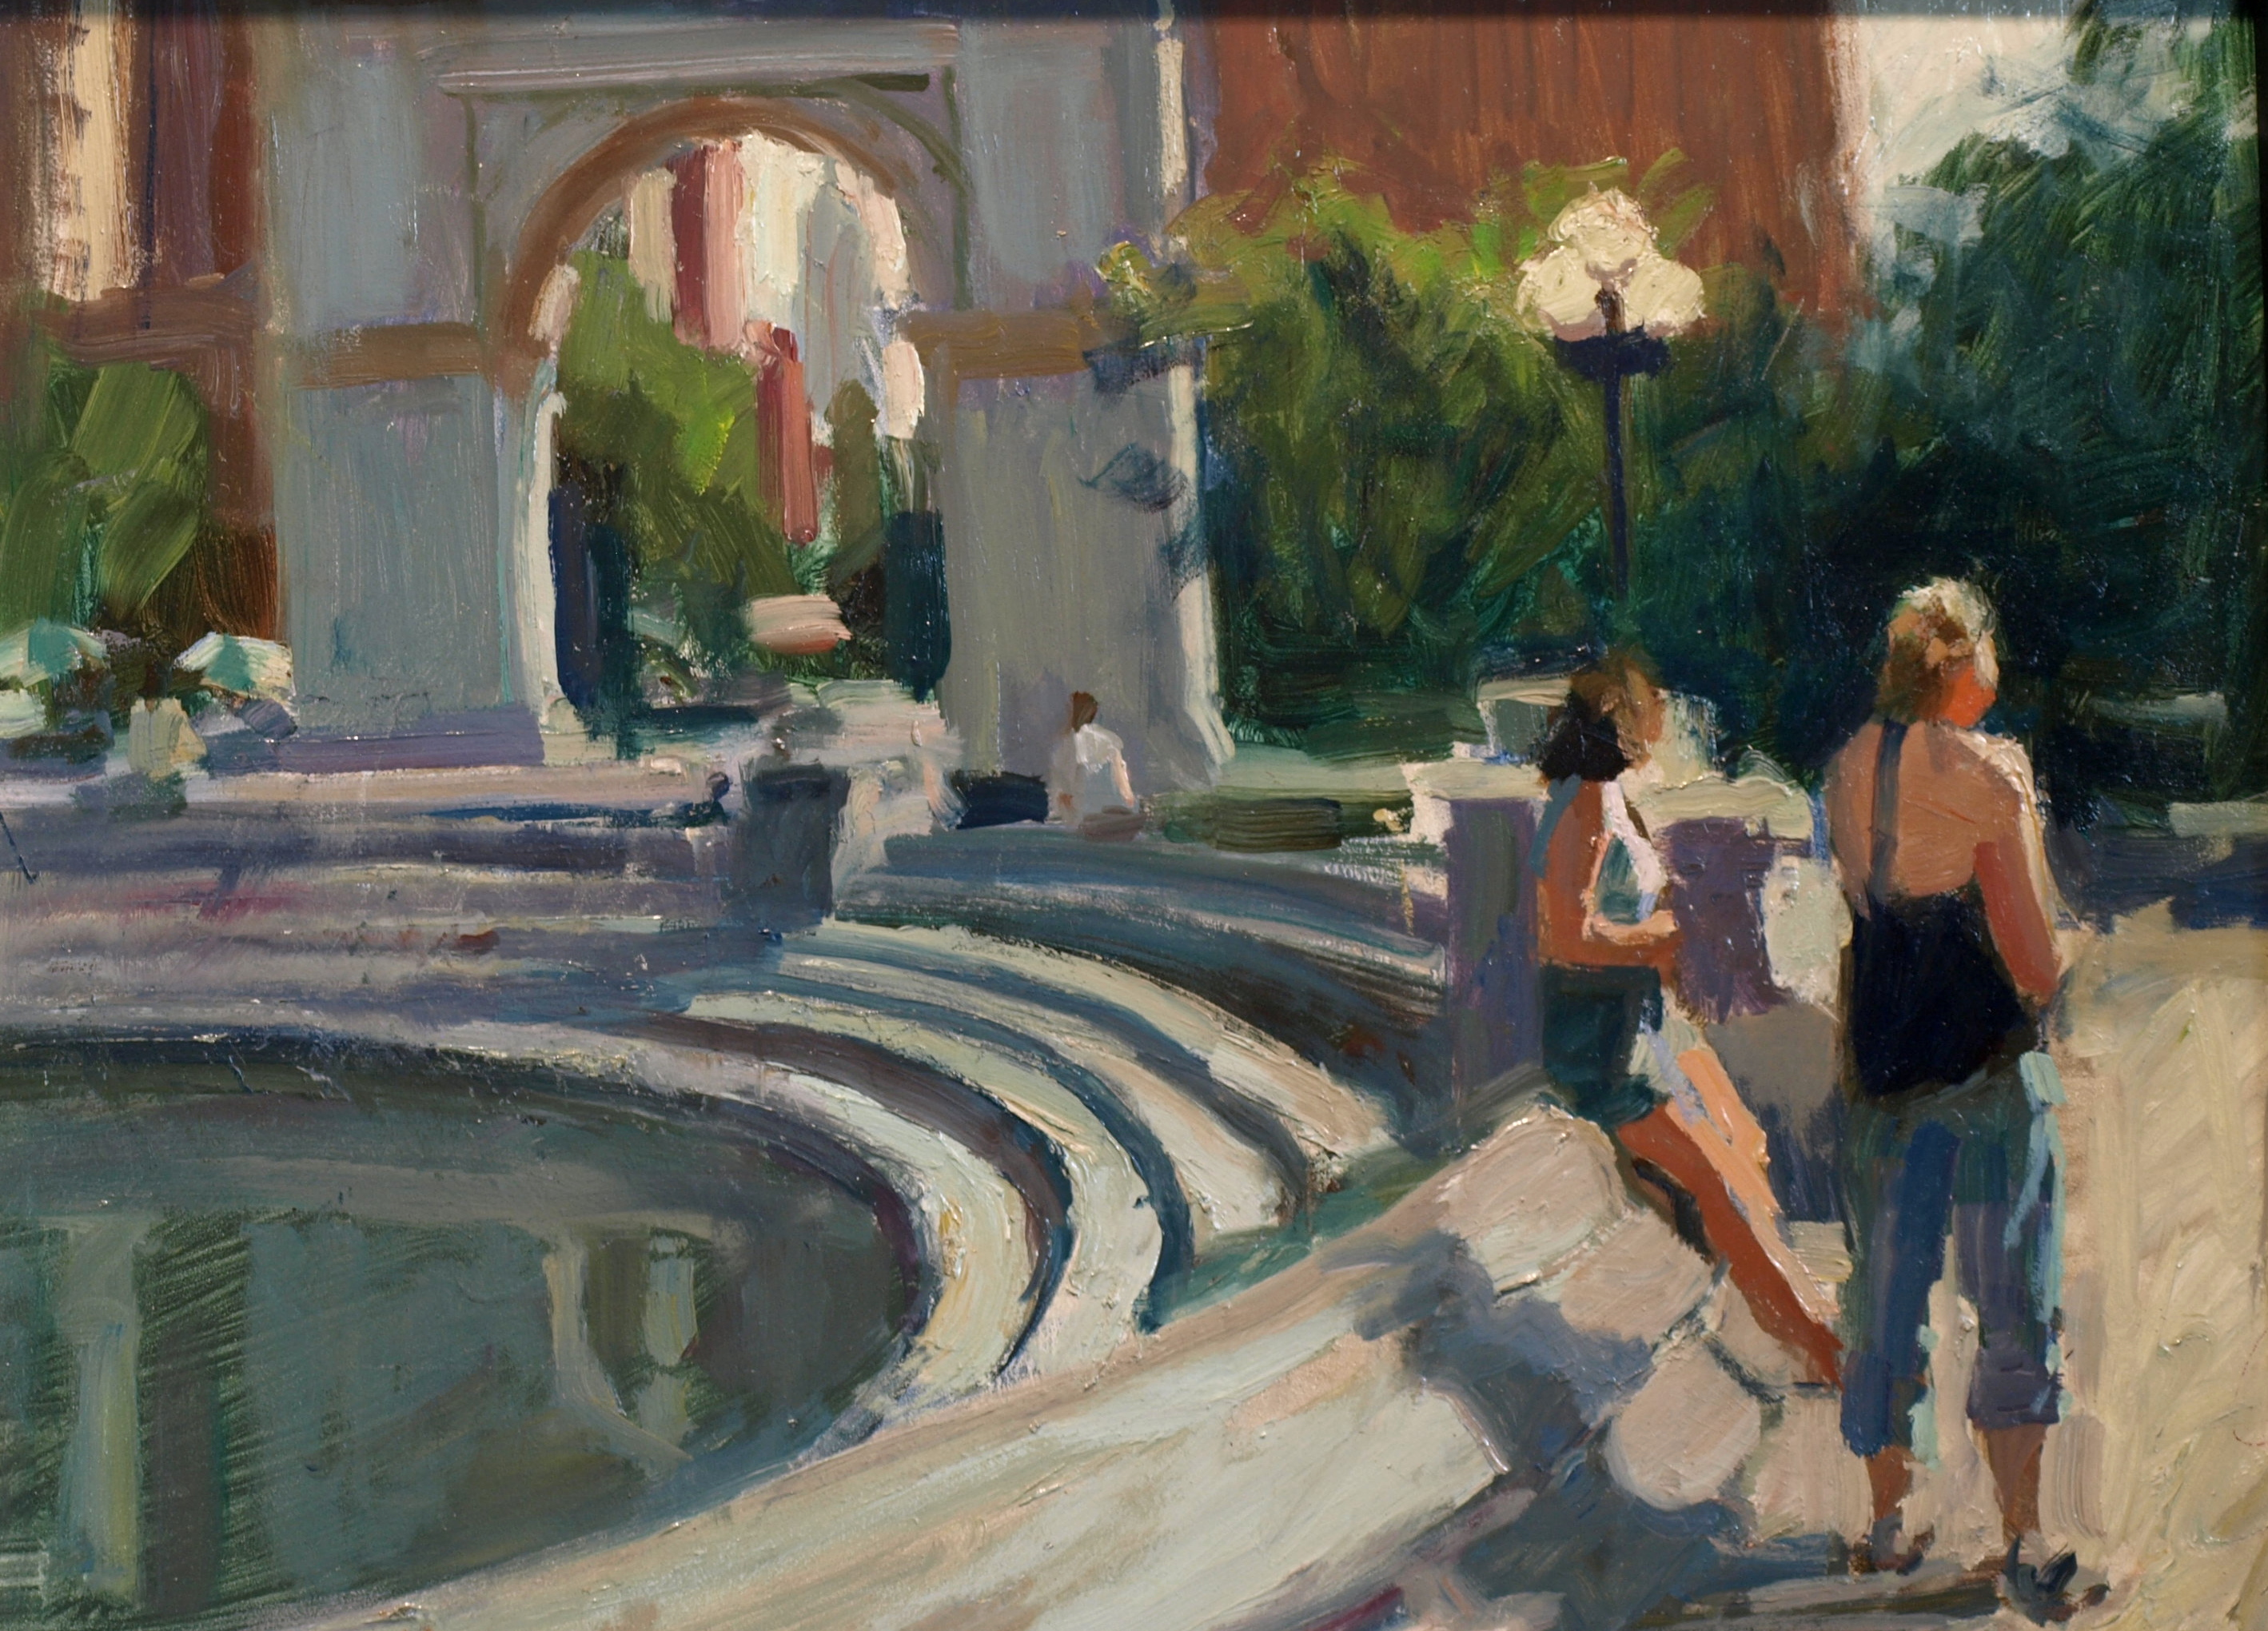 Near the Arch, Oil on Canvas on Panel, 12 x 16 Inches, by Susan Grisell, $300